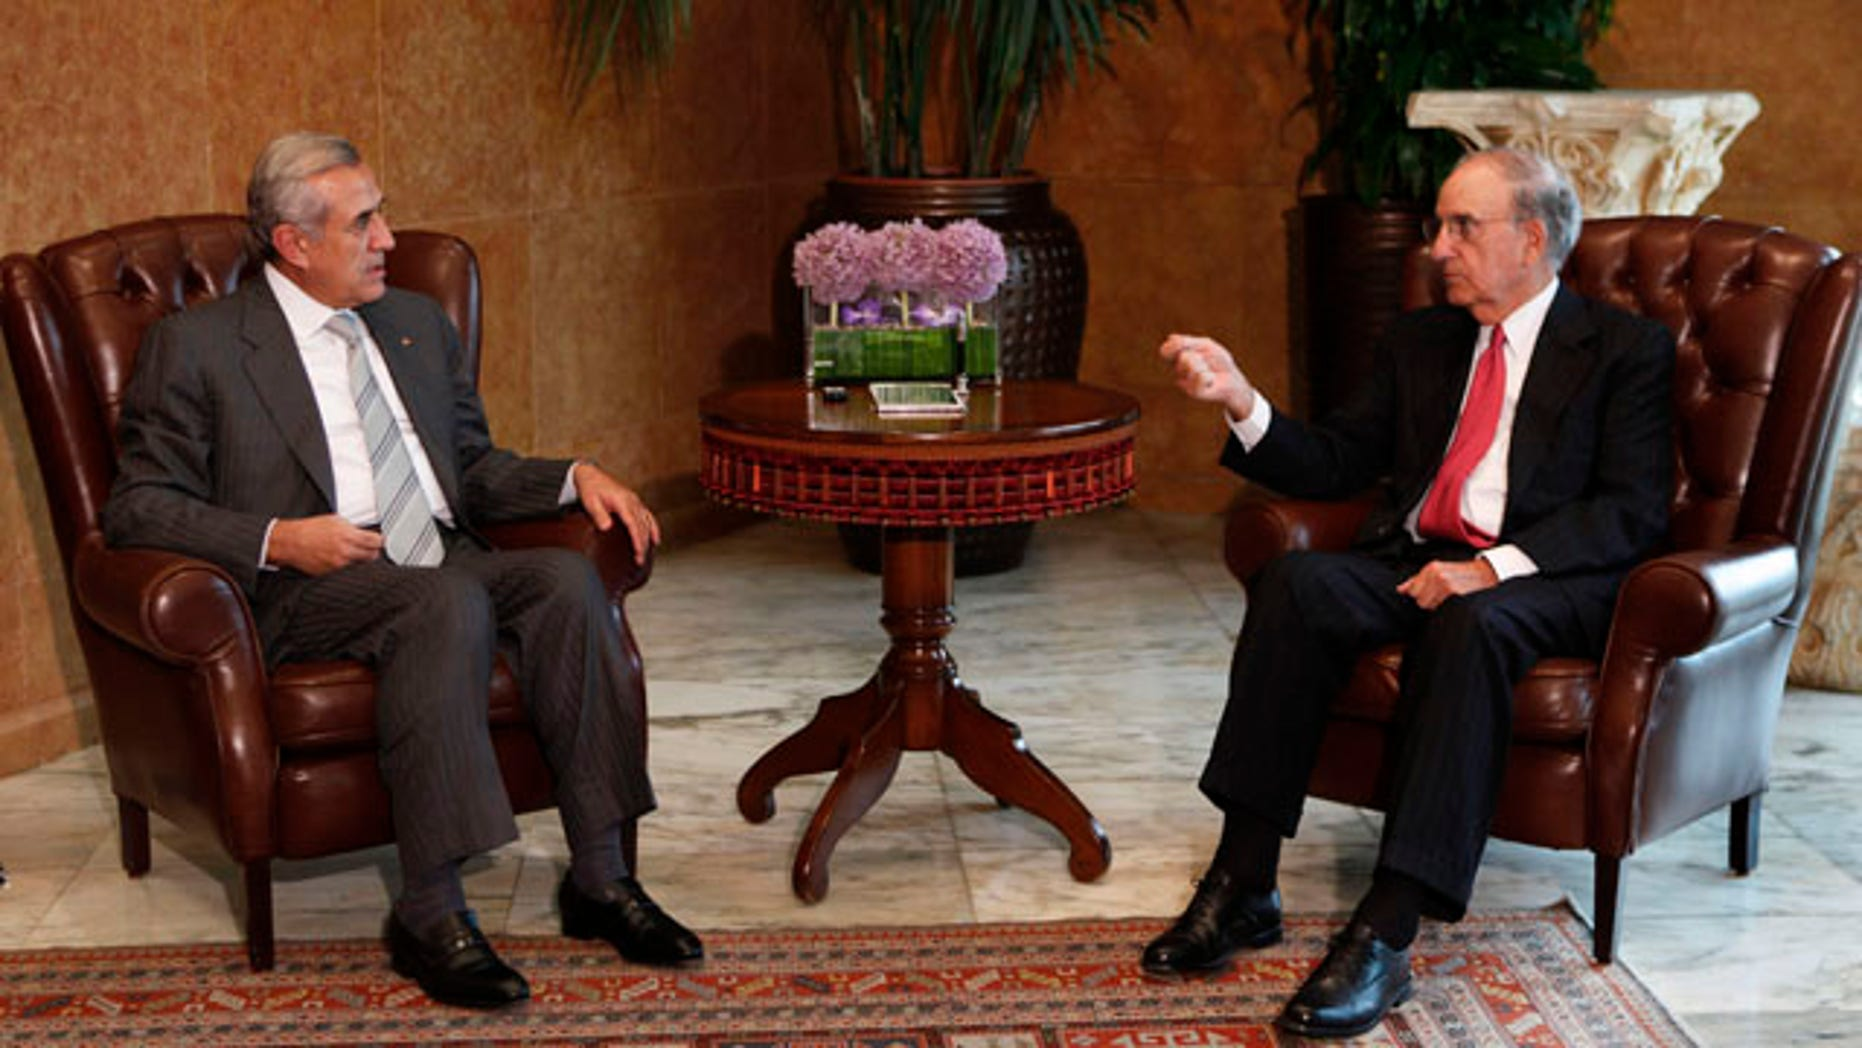 September 17: Lebanese President Michel Suleiman, meets with U.S. peace envoy George Mitchell, at the Presidential Palace in Baabda, east of Beirut, Lebanon. (AP)